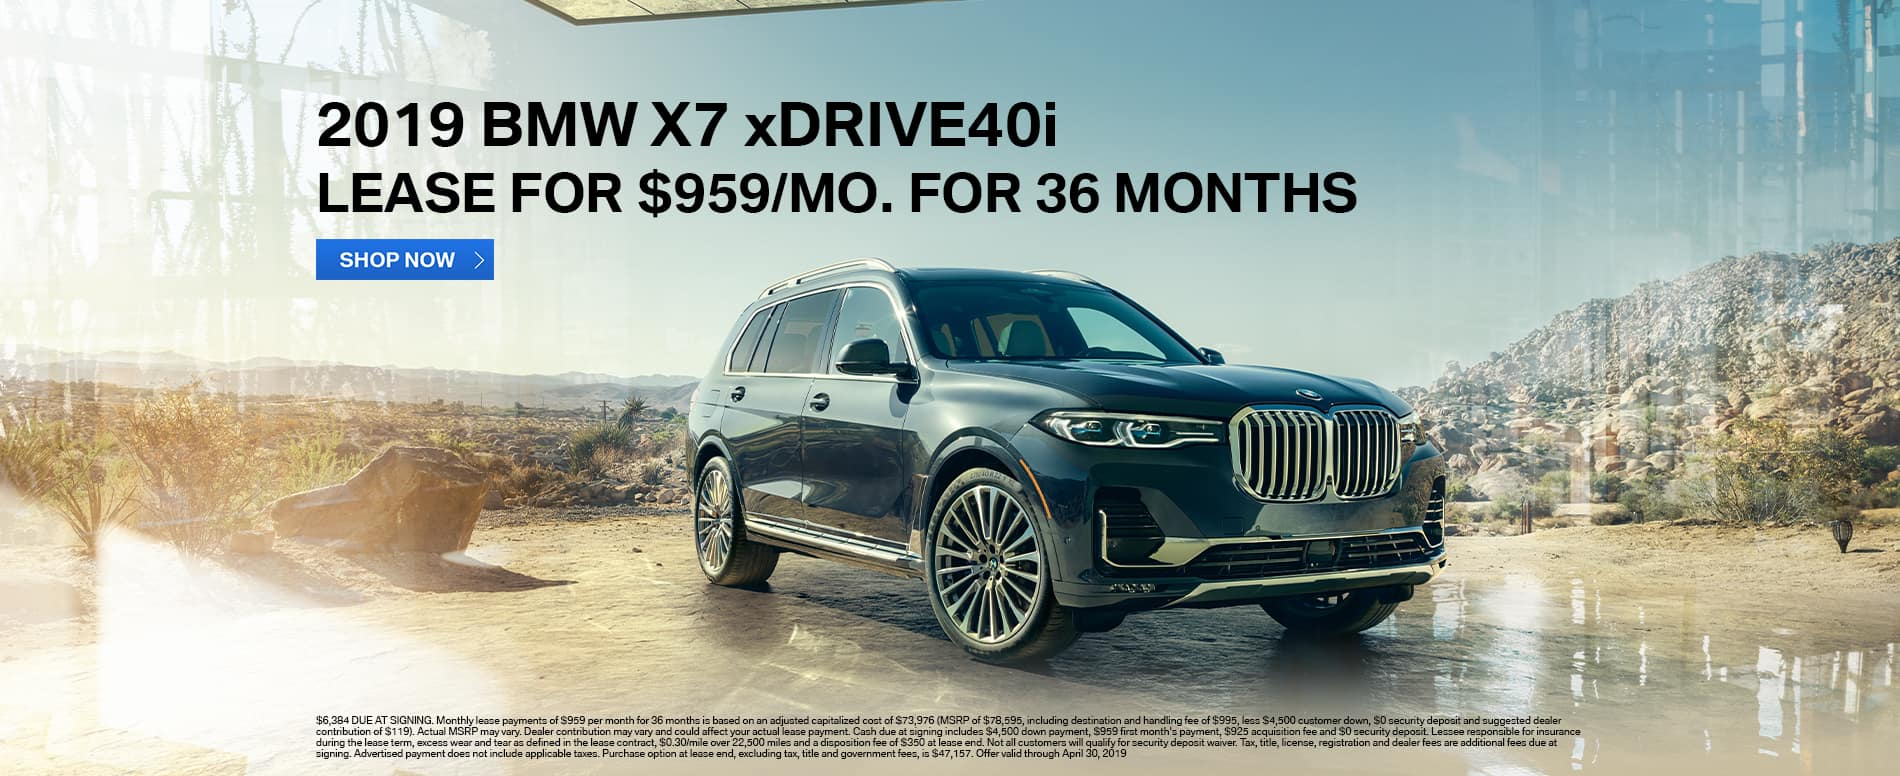 lease-bmw-x7-xdrive40i-959-mo-beaumont